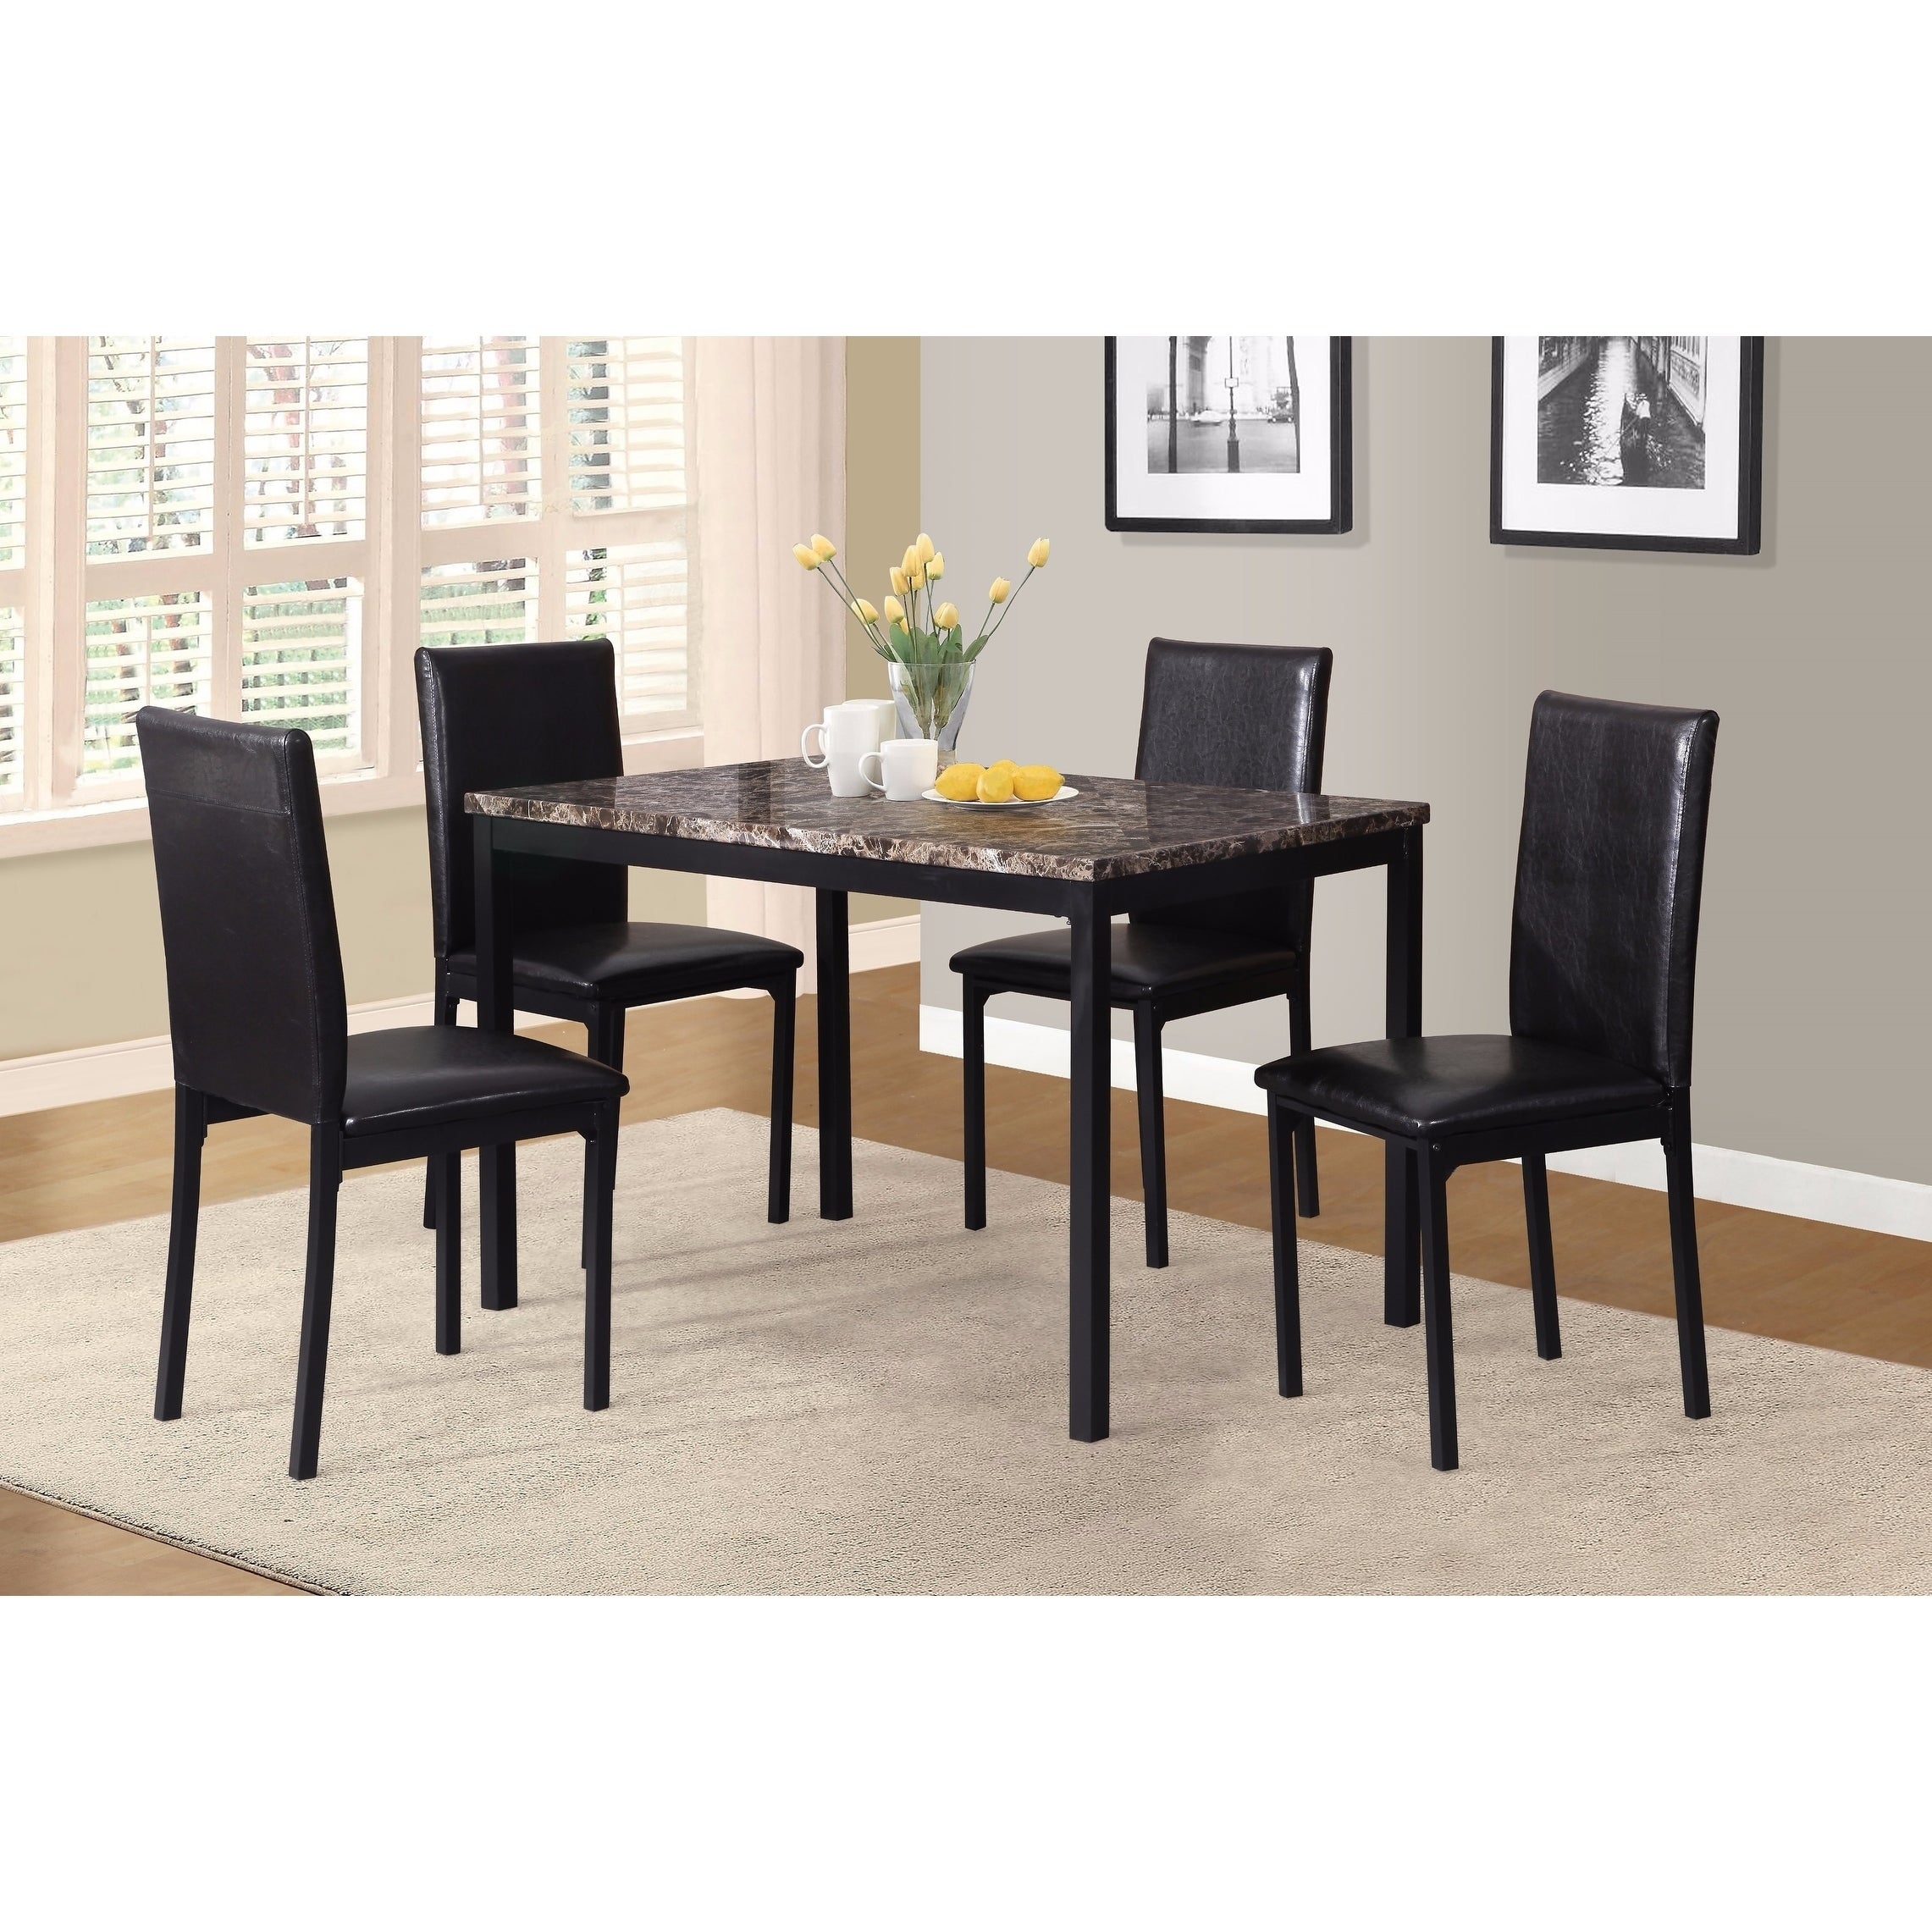 Noyes Metal Dining Table With Laminated Faux Marble Top – Black With Recent Noyes 5 Piece Dining Sets (View 7 of 20)